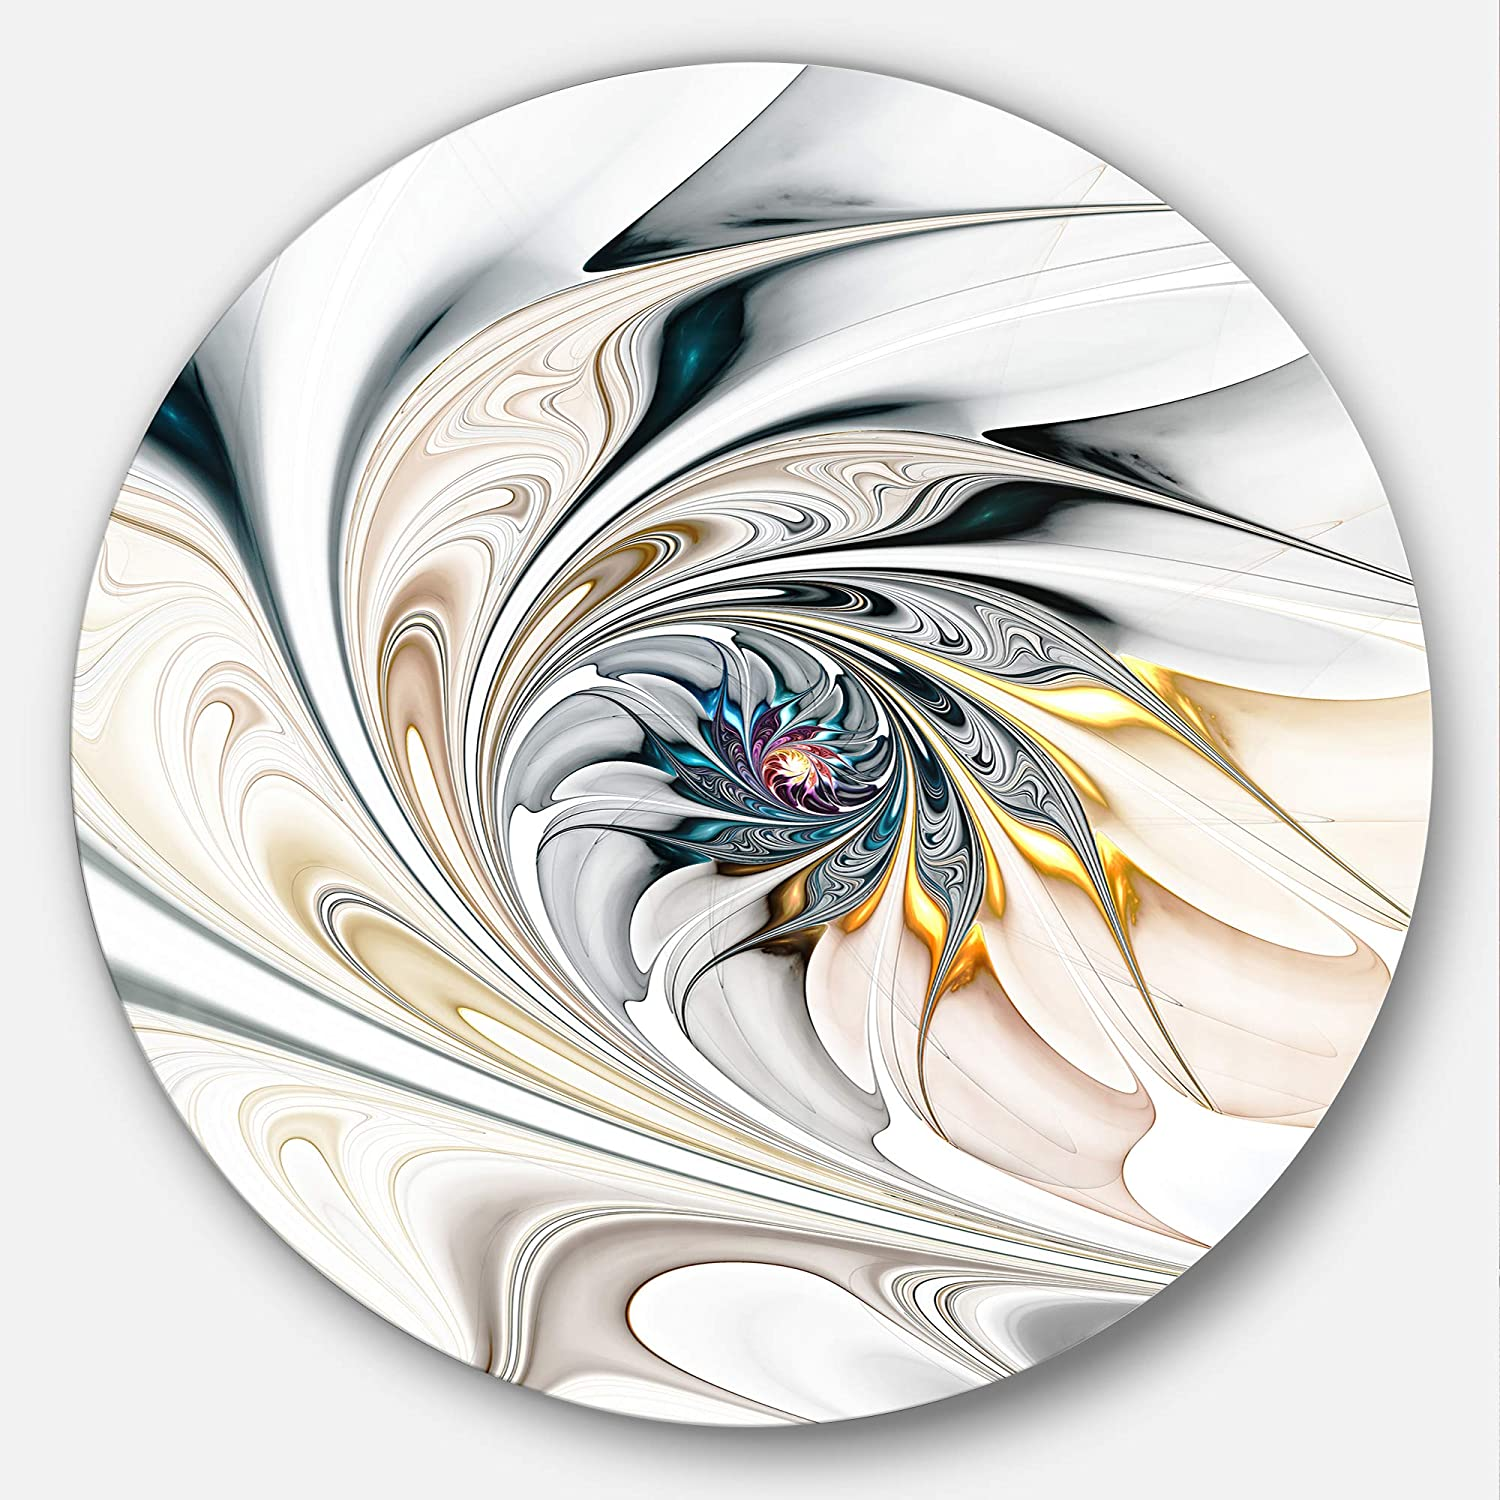 Amazon Com Designart Mt10276 C38 White Stained Glass Floral Art Floral Disc 38 X 38 White Home Kitchen